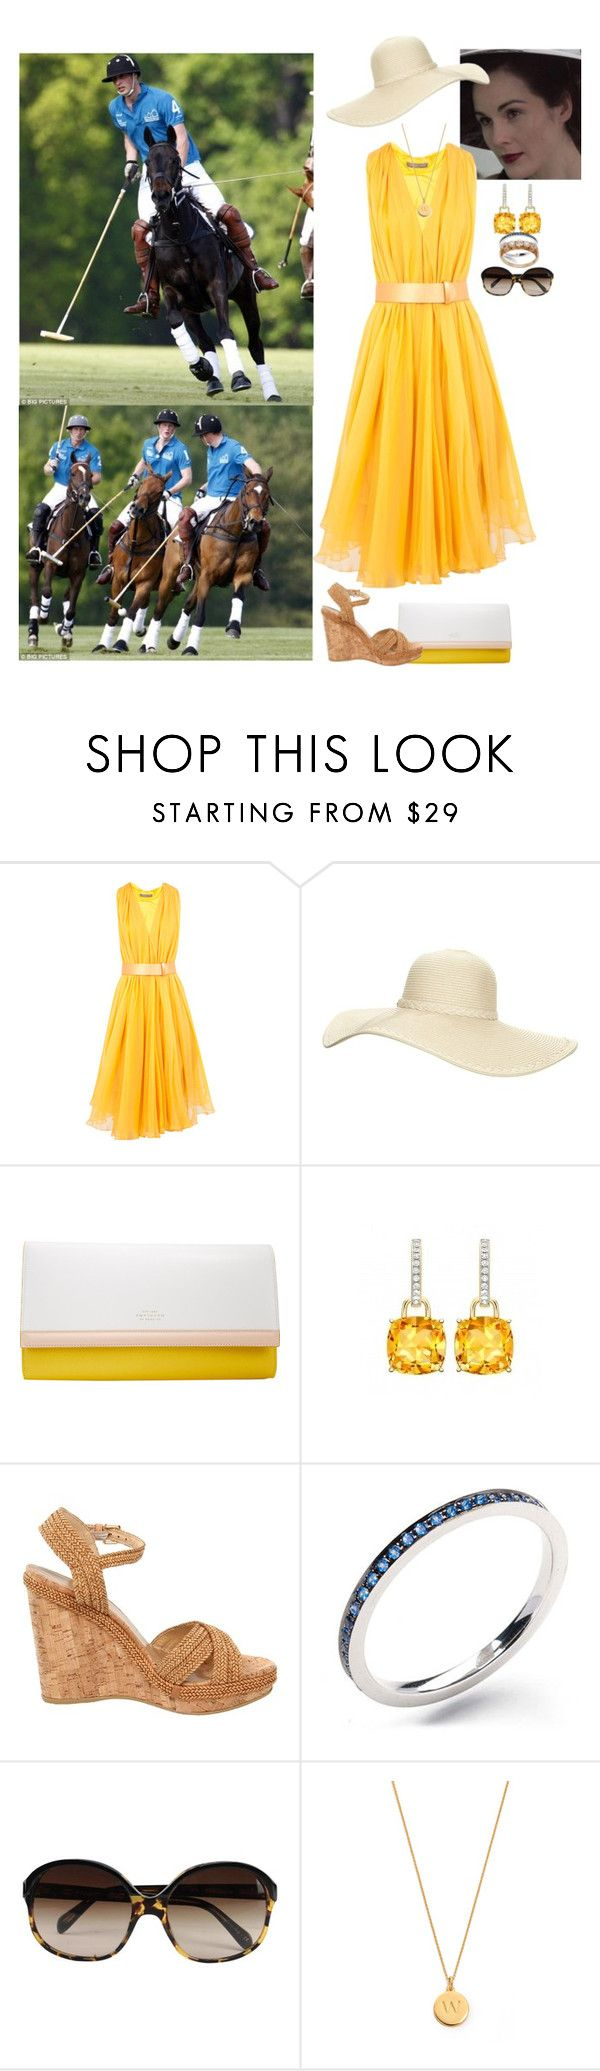 """""""Flashback Friday: Attending a Polo match played by William & Harry to Raise Money for Centrepoint"""" by madeleine-duchessofcam ❤ liked on Polyvore featuring Alexander McQueen, Reger by Janet Reger, Smythson, Stuart Weitzman, Oliver Peoples, Kate Spade and flashbackfriday"""